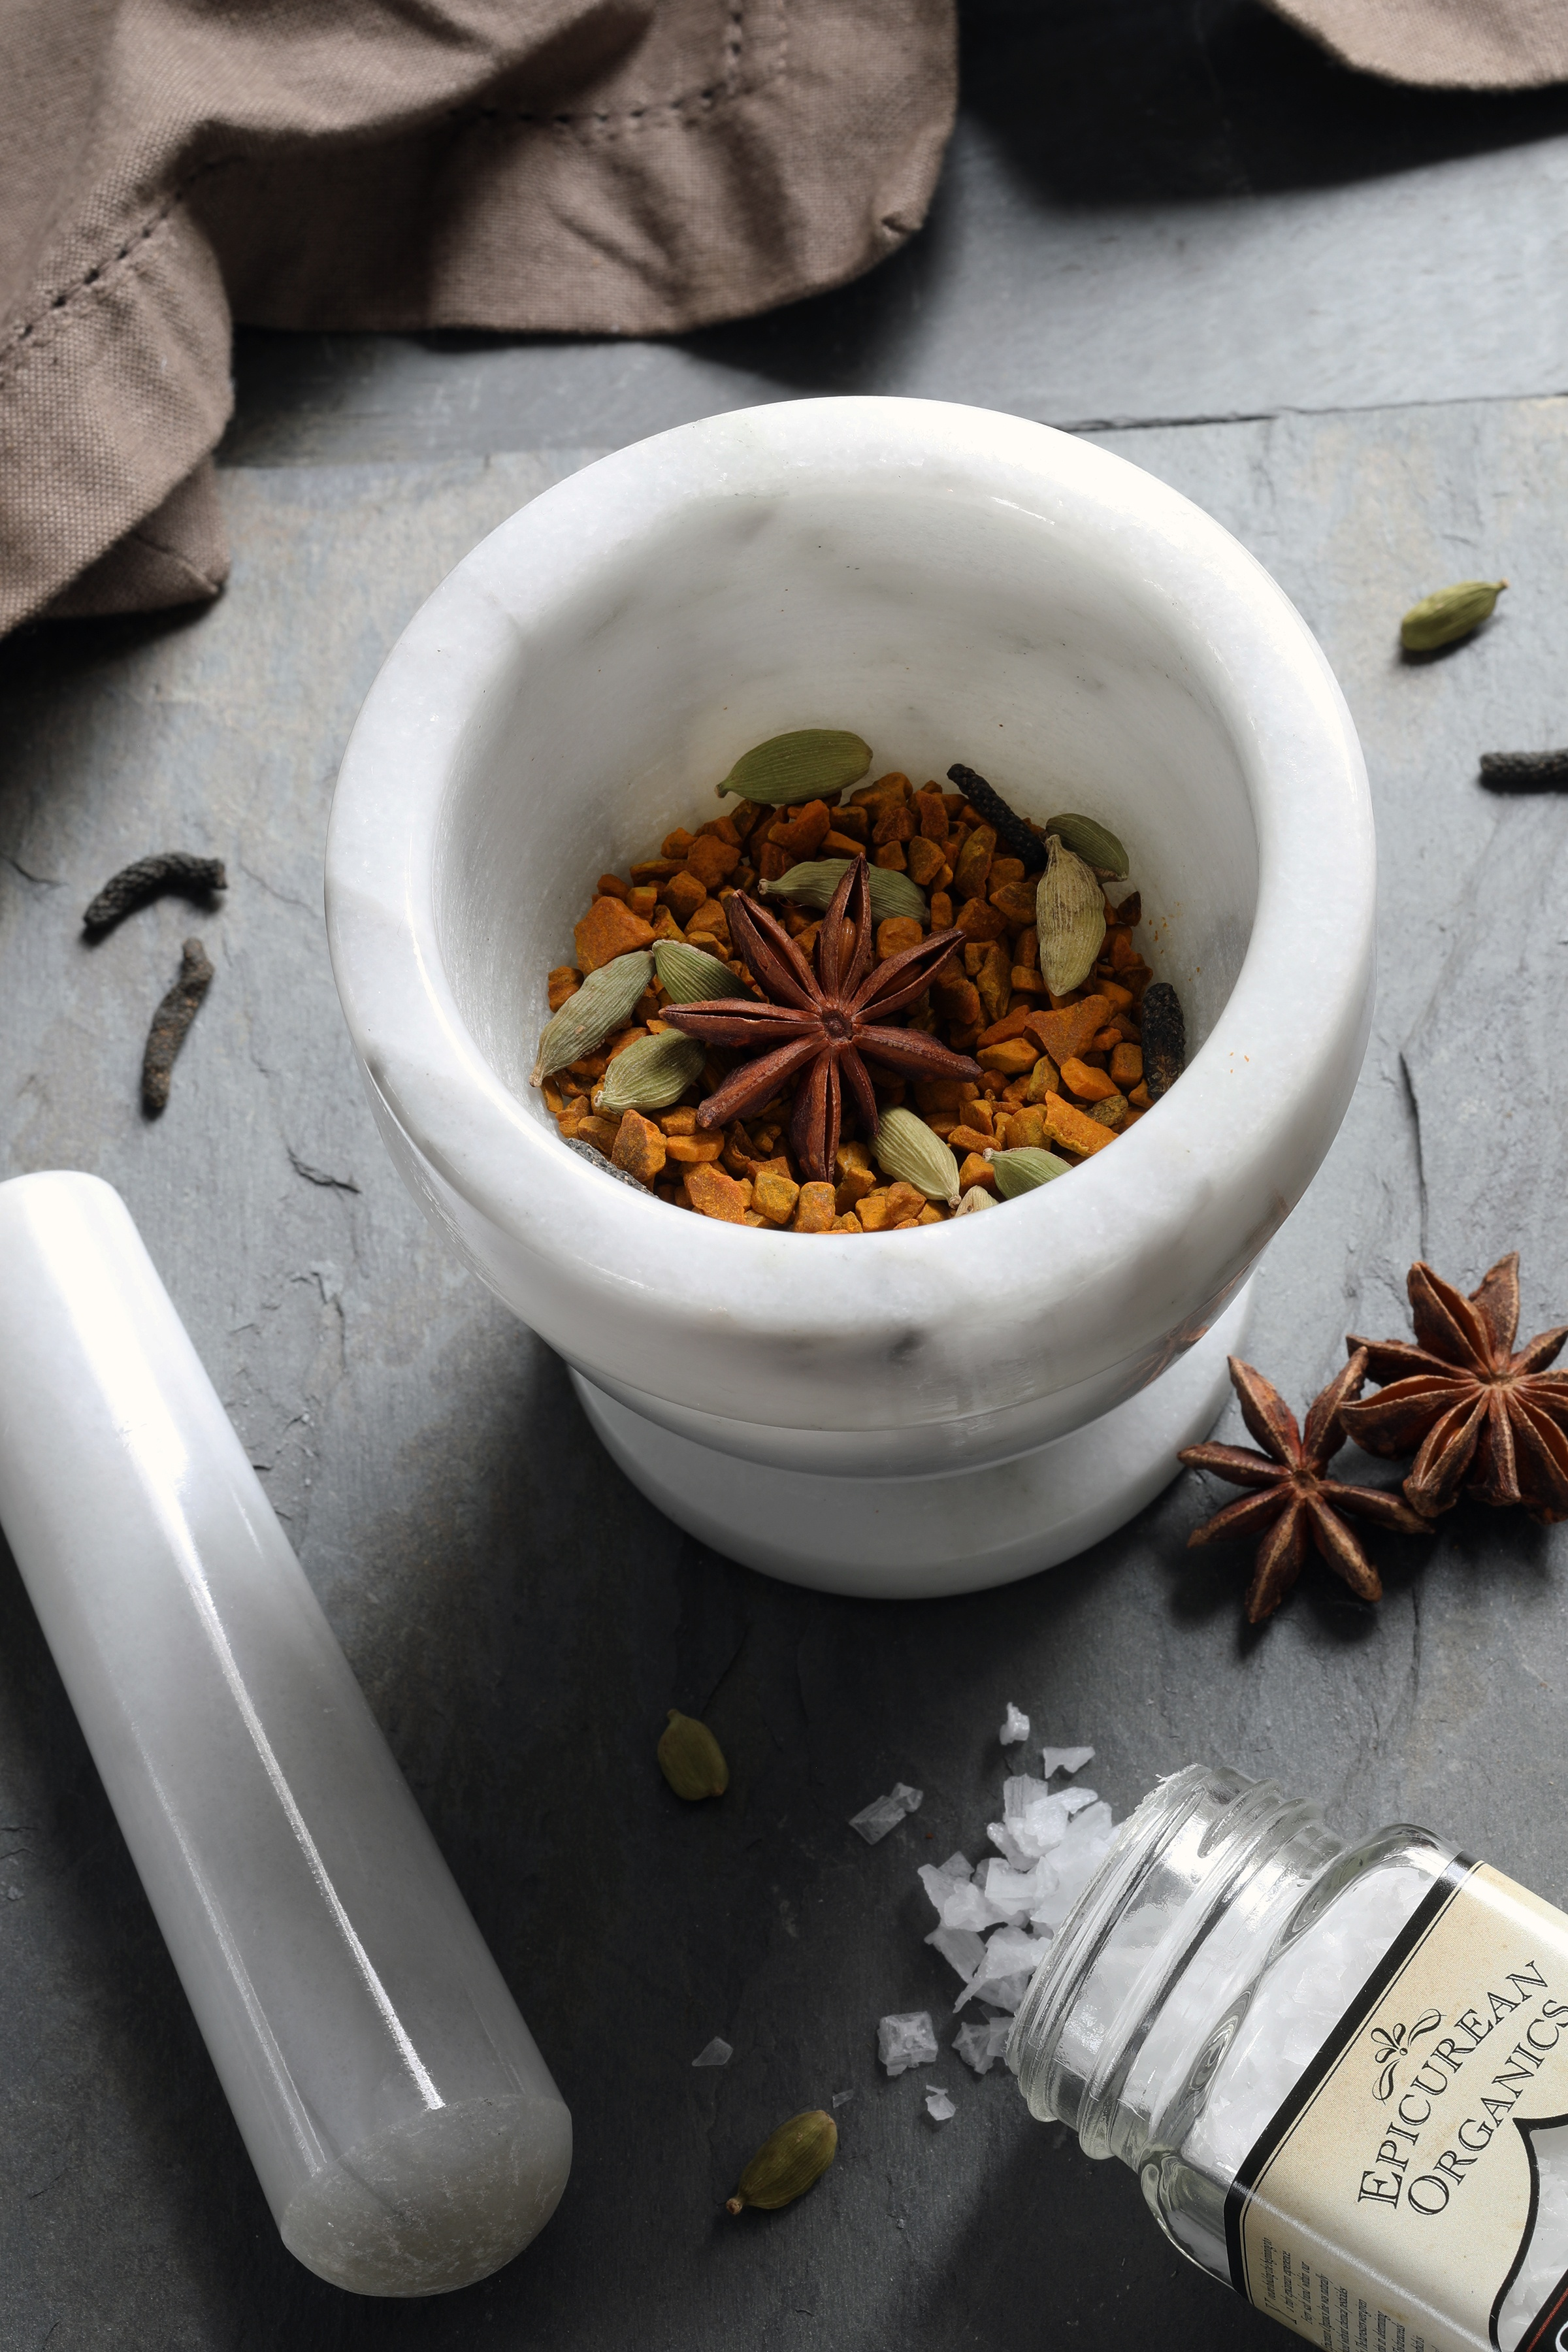 Whole cardamom and star anise and dried turmeric in mortar with pestle on counter